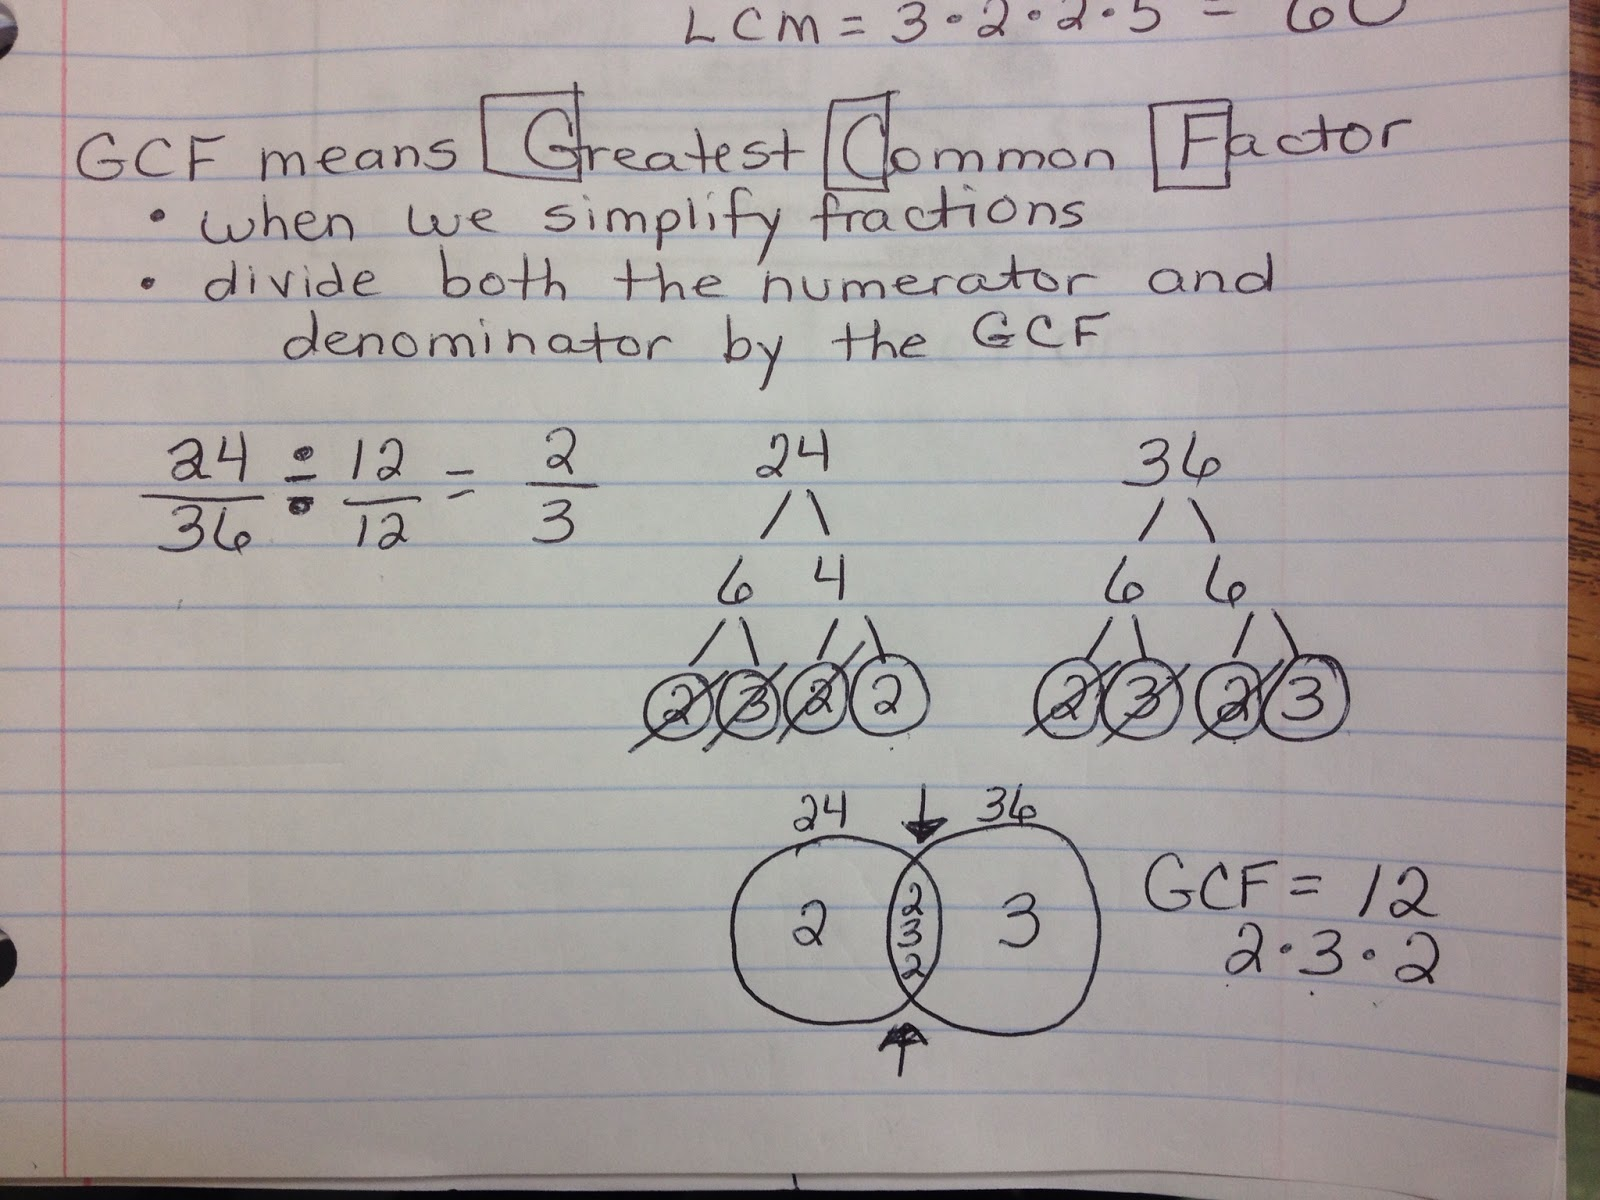 Multiplying And Dividing Fractions Once We Have The Gcf, The Numerator And  Denominator Need To Be Divided By That